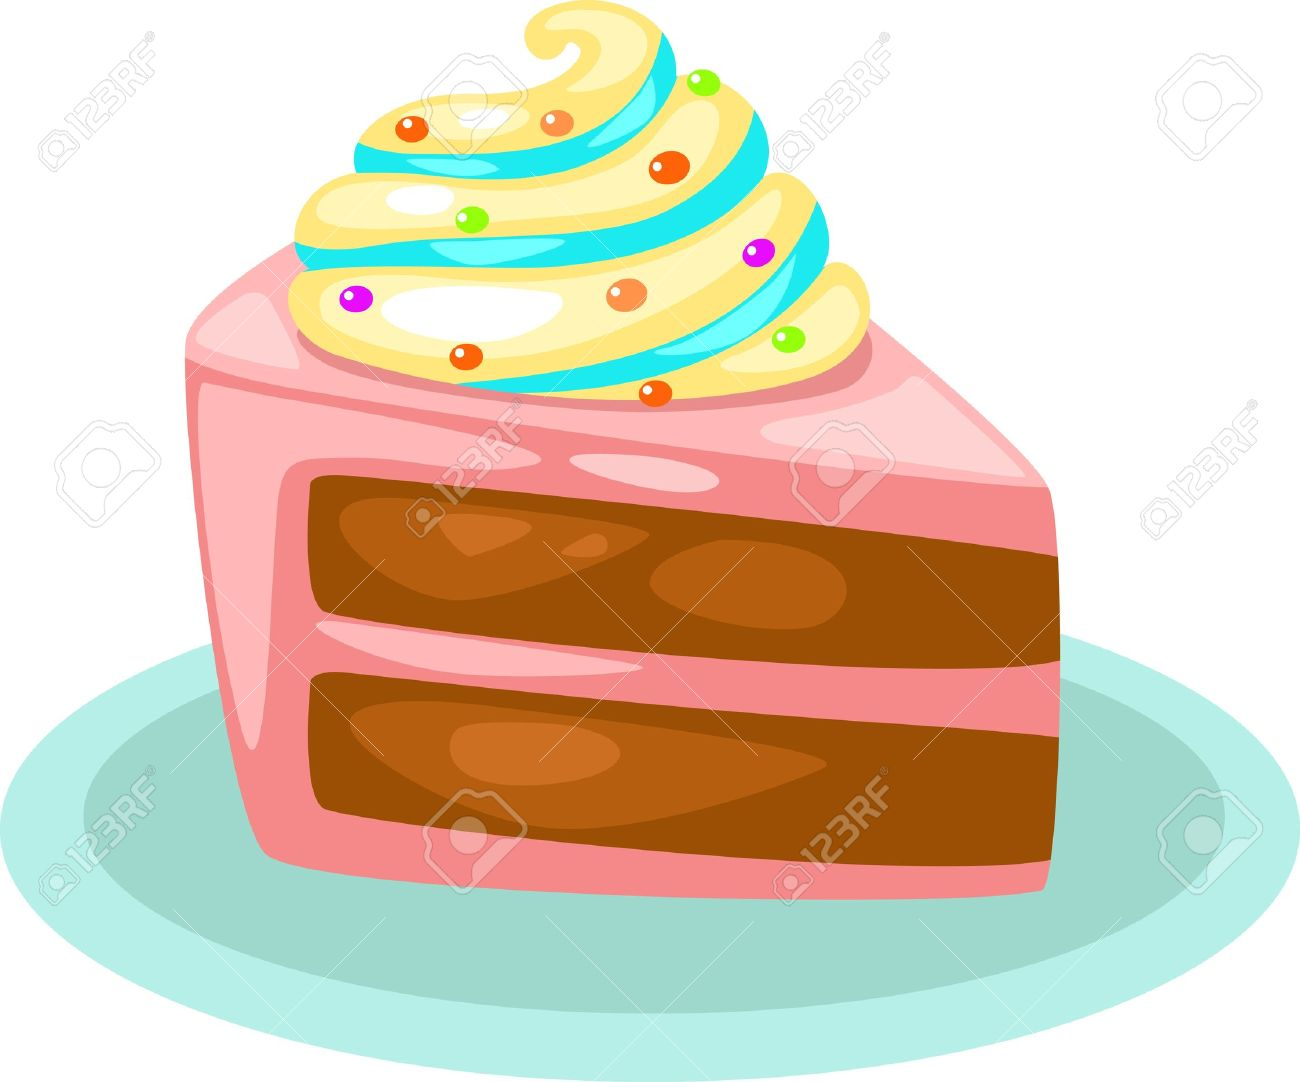 Cute slice of cake clipart royalty free stock Cute slice of cake clipart - ClipartFest royalty free stock